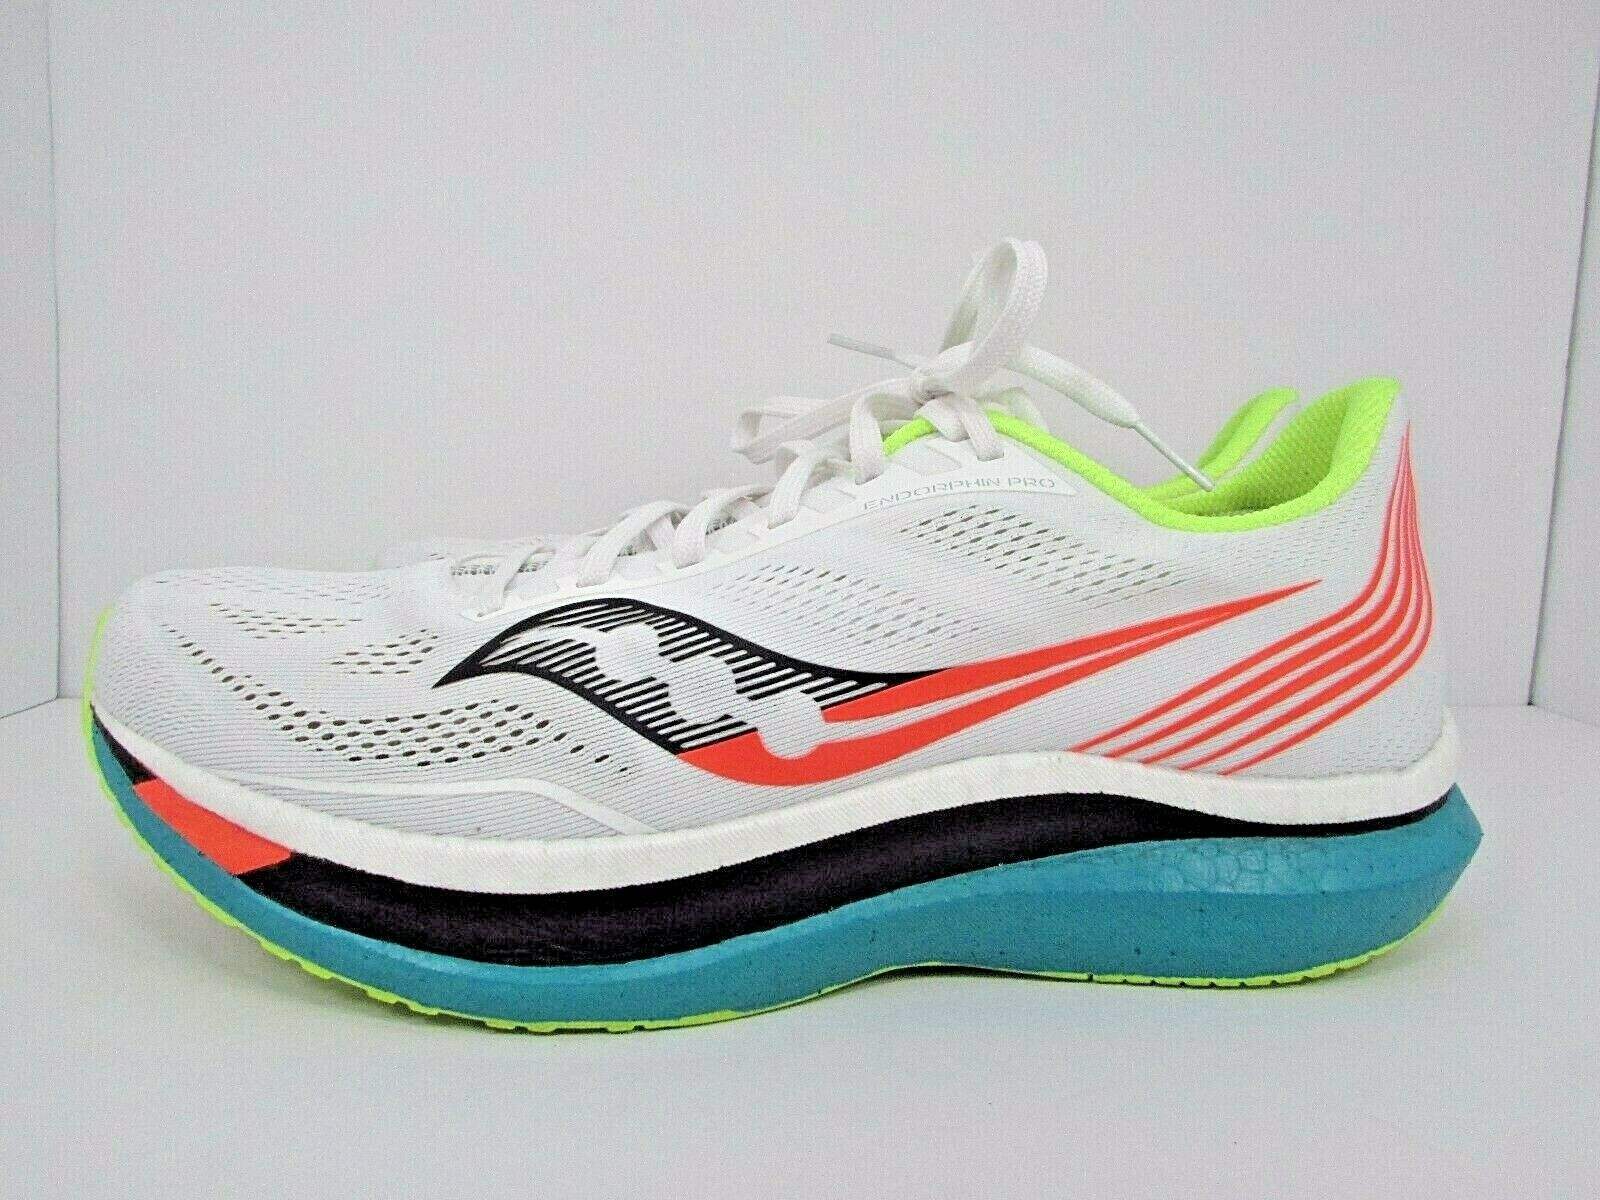 MEN'S SAUCONY ENDORPHIN PRO size 11 !!WORN LESS THAN 30 MILES! RUNNING SHOES!